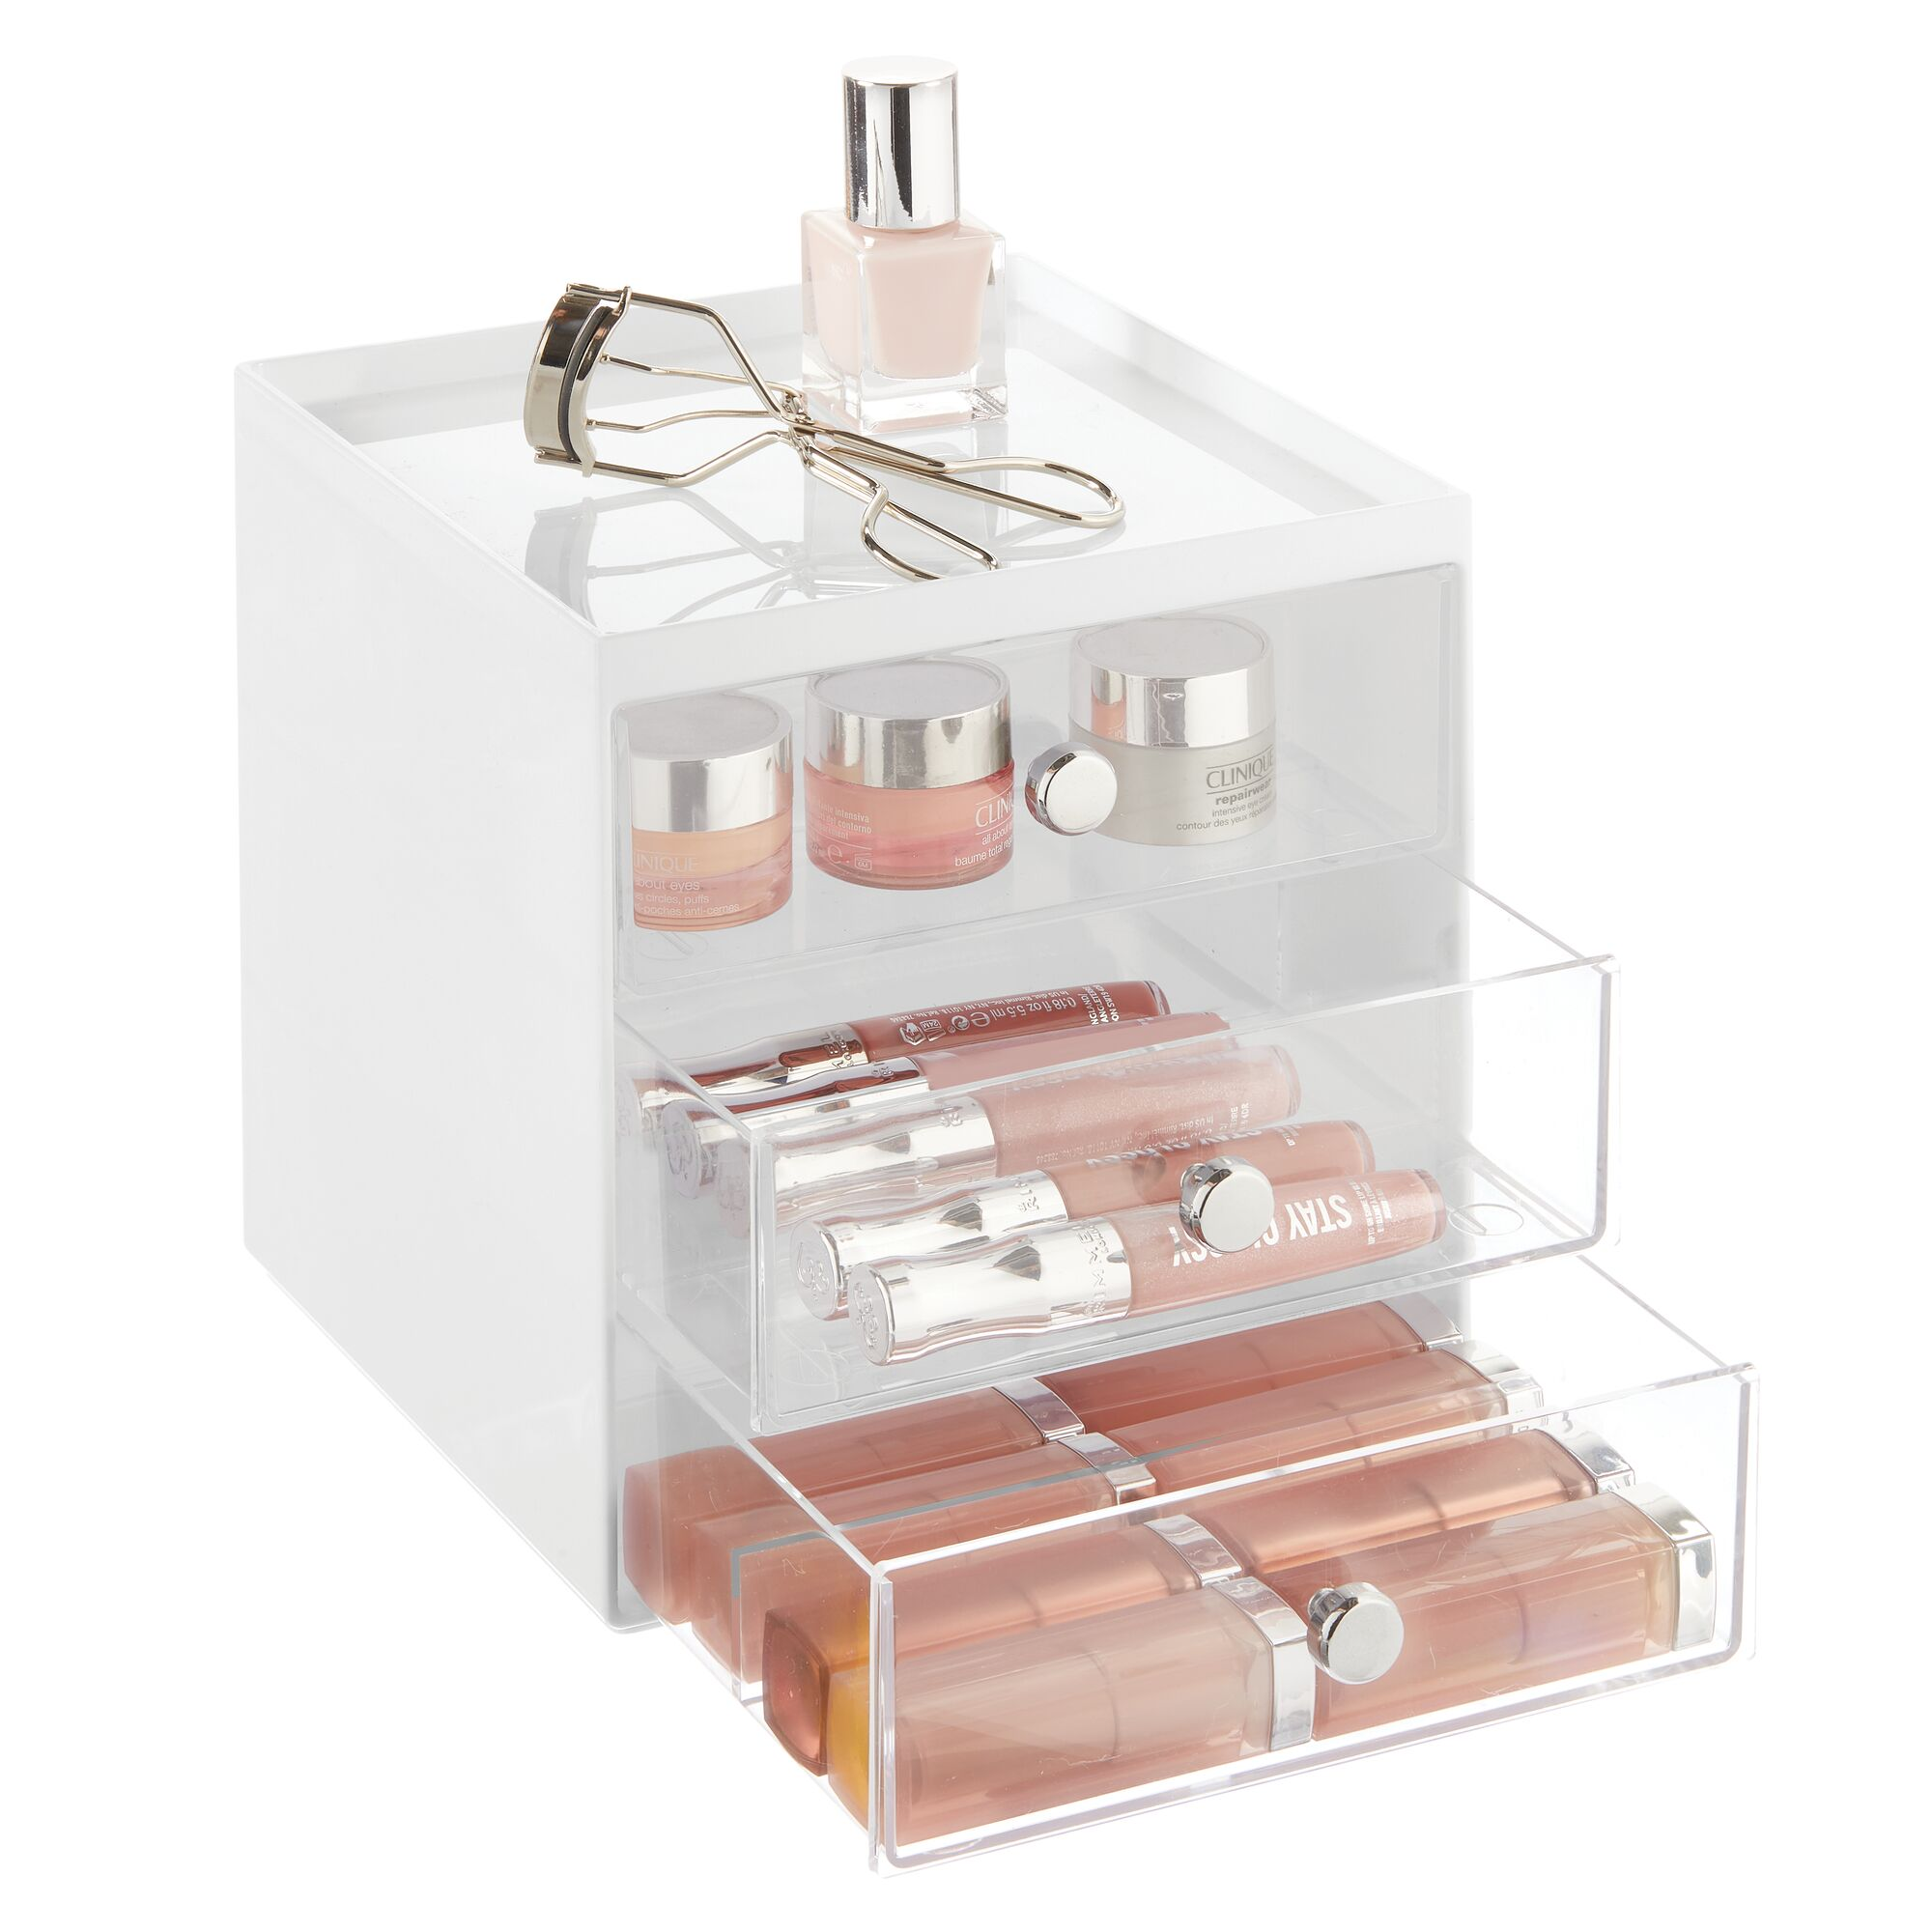 mDesign-Plastic-Makeup-Storage-Organizer-Cube-3-Drawers thumbnail 79